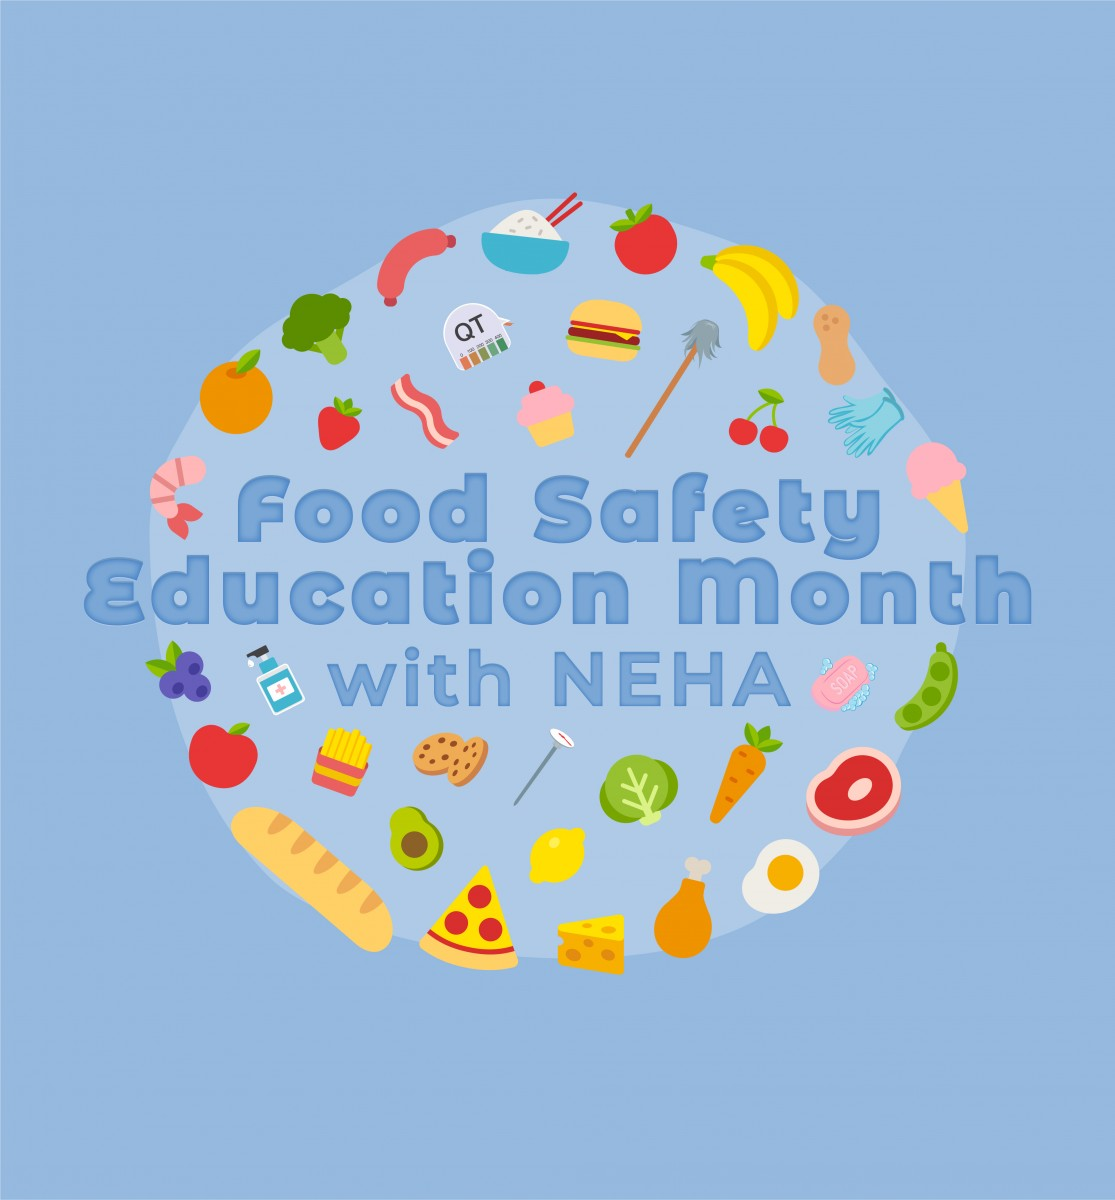 National Food Safety Education Month With NEHA